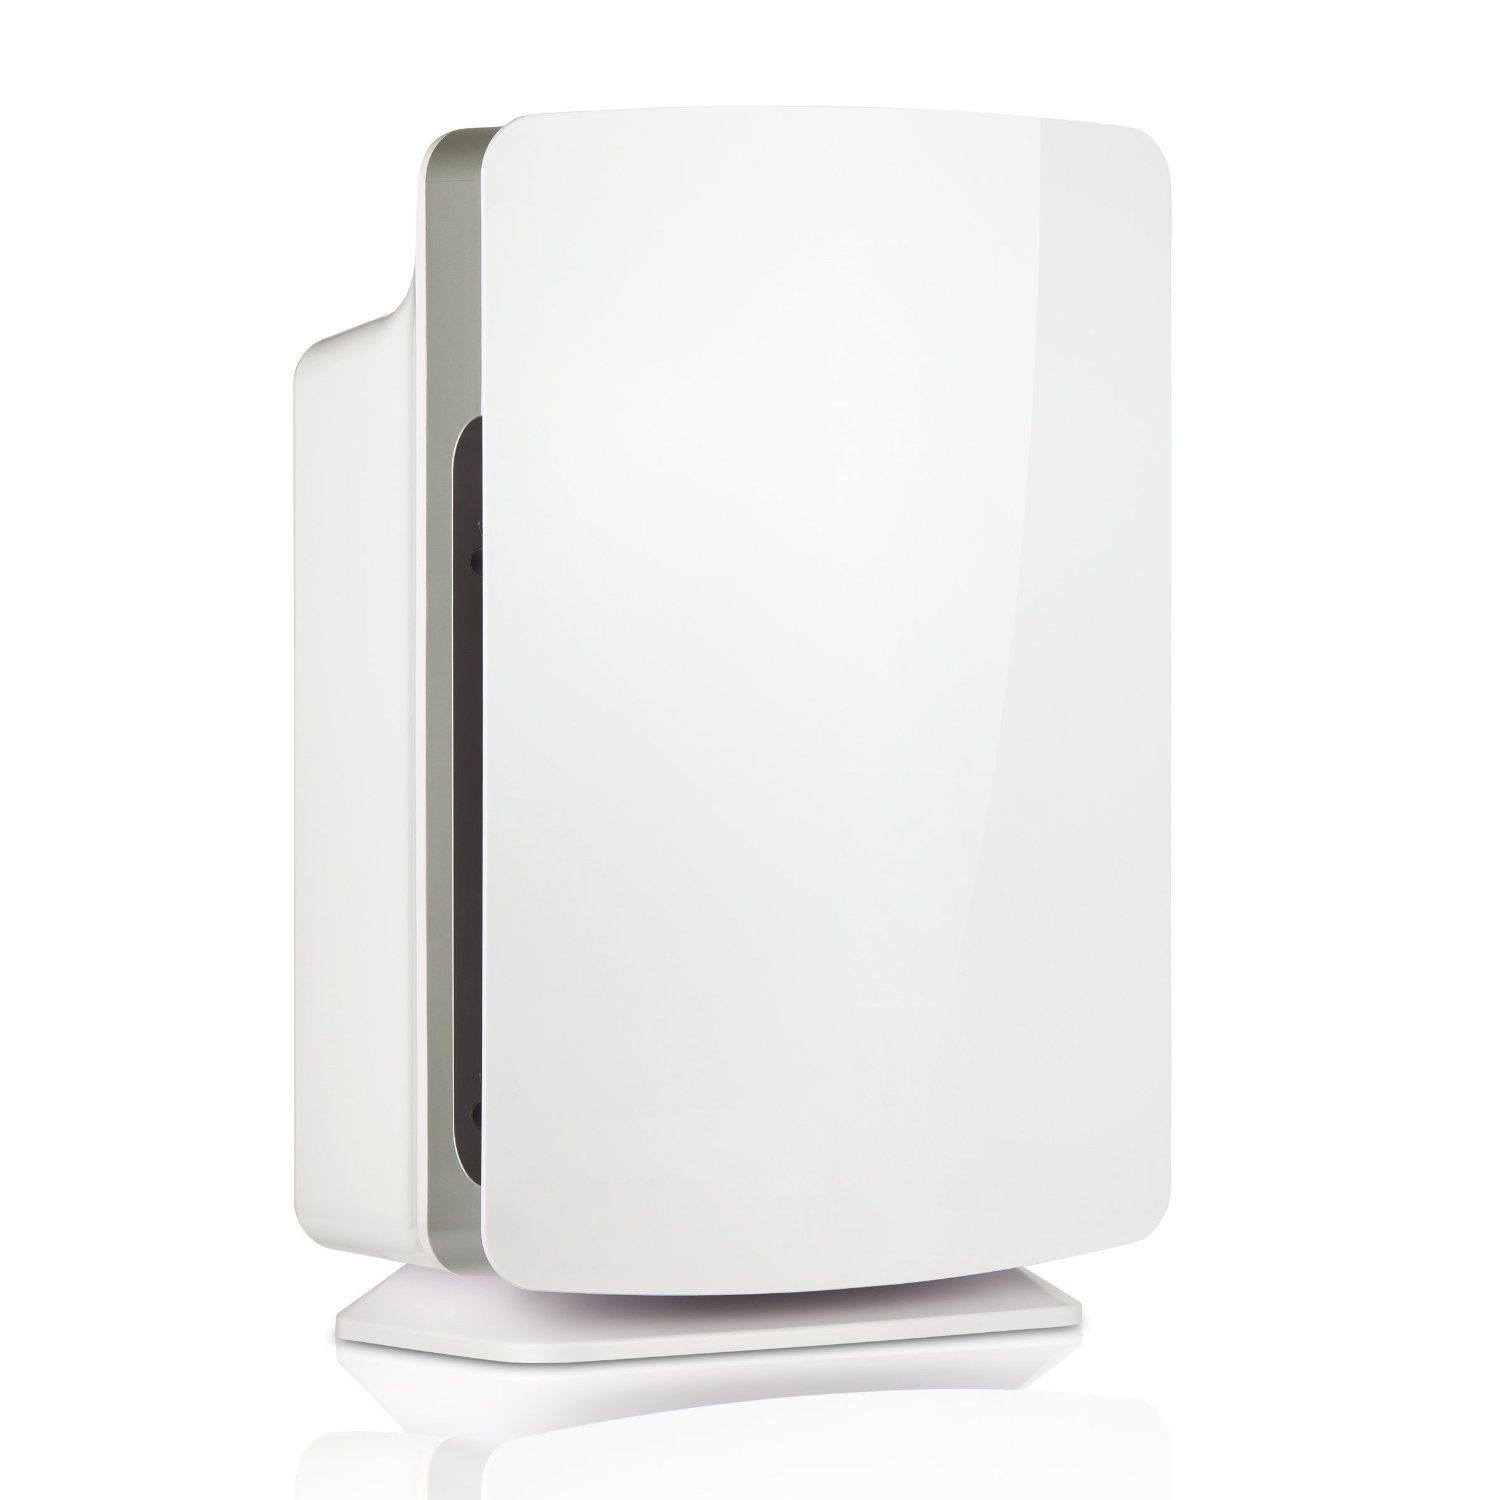 Alen BreatheSmart HEPA Air Purifier with White Cover